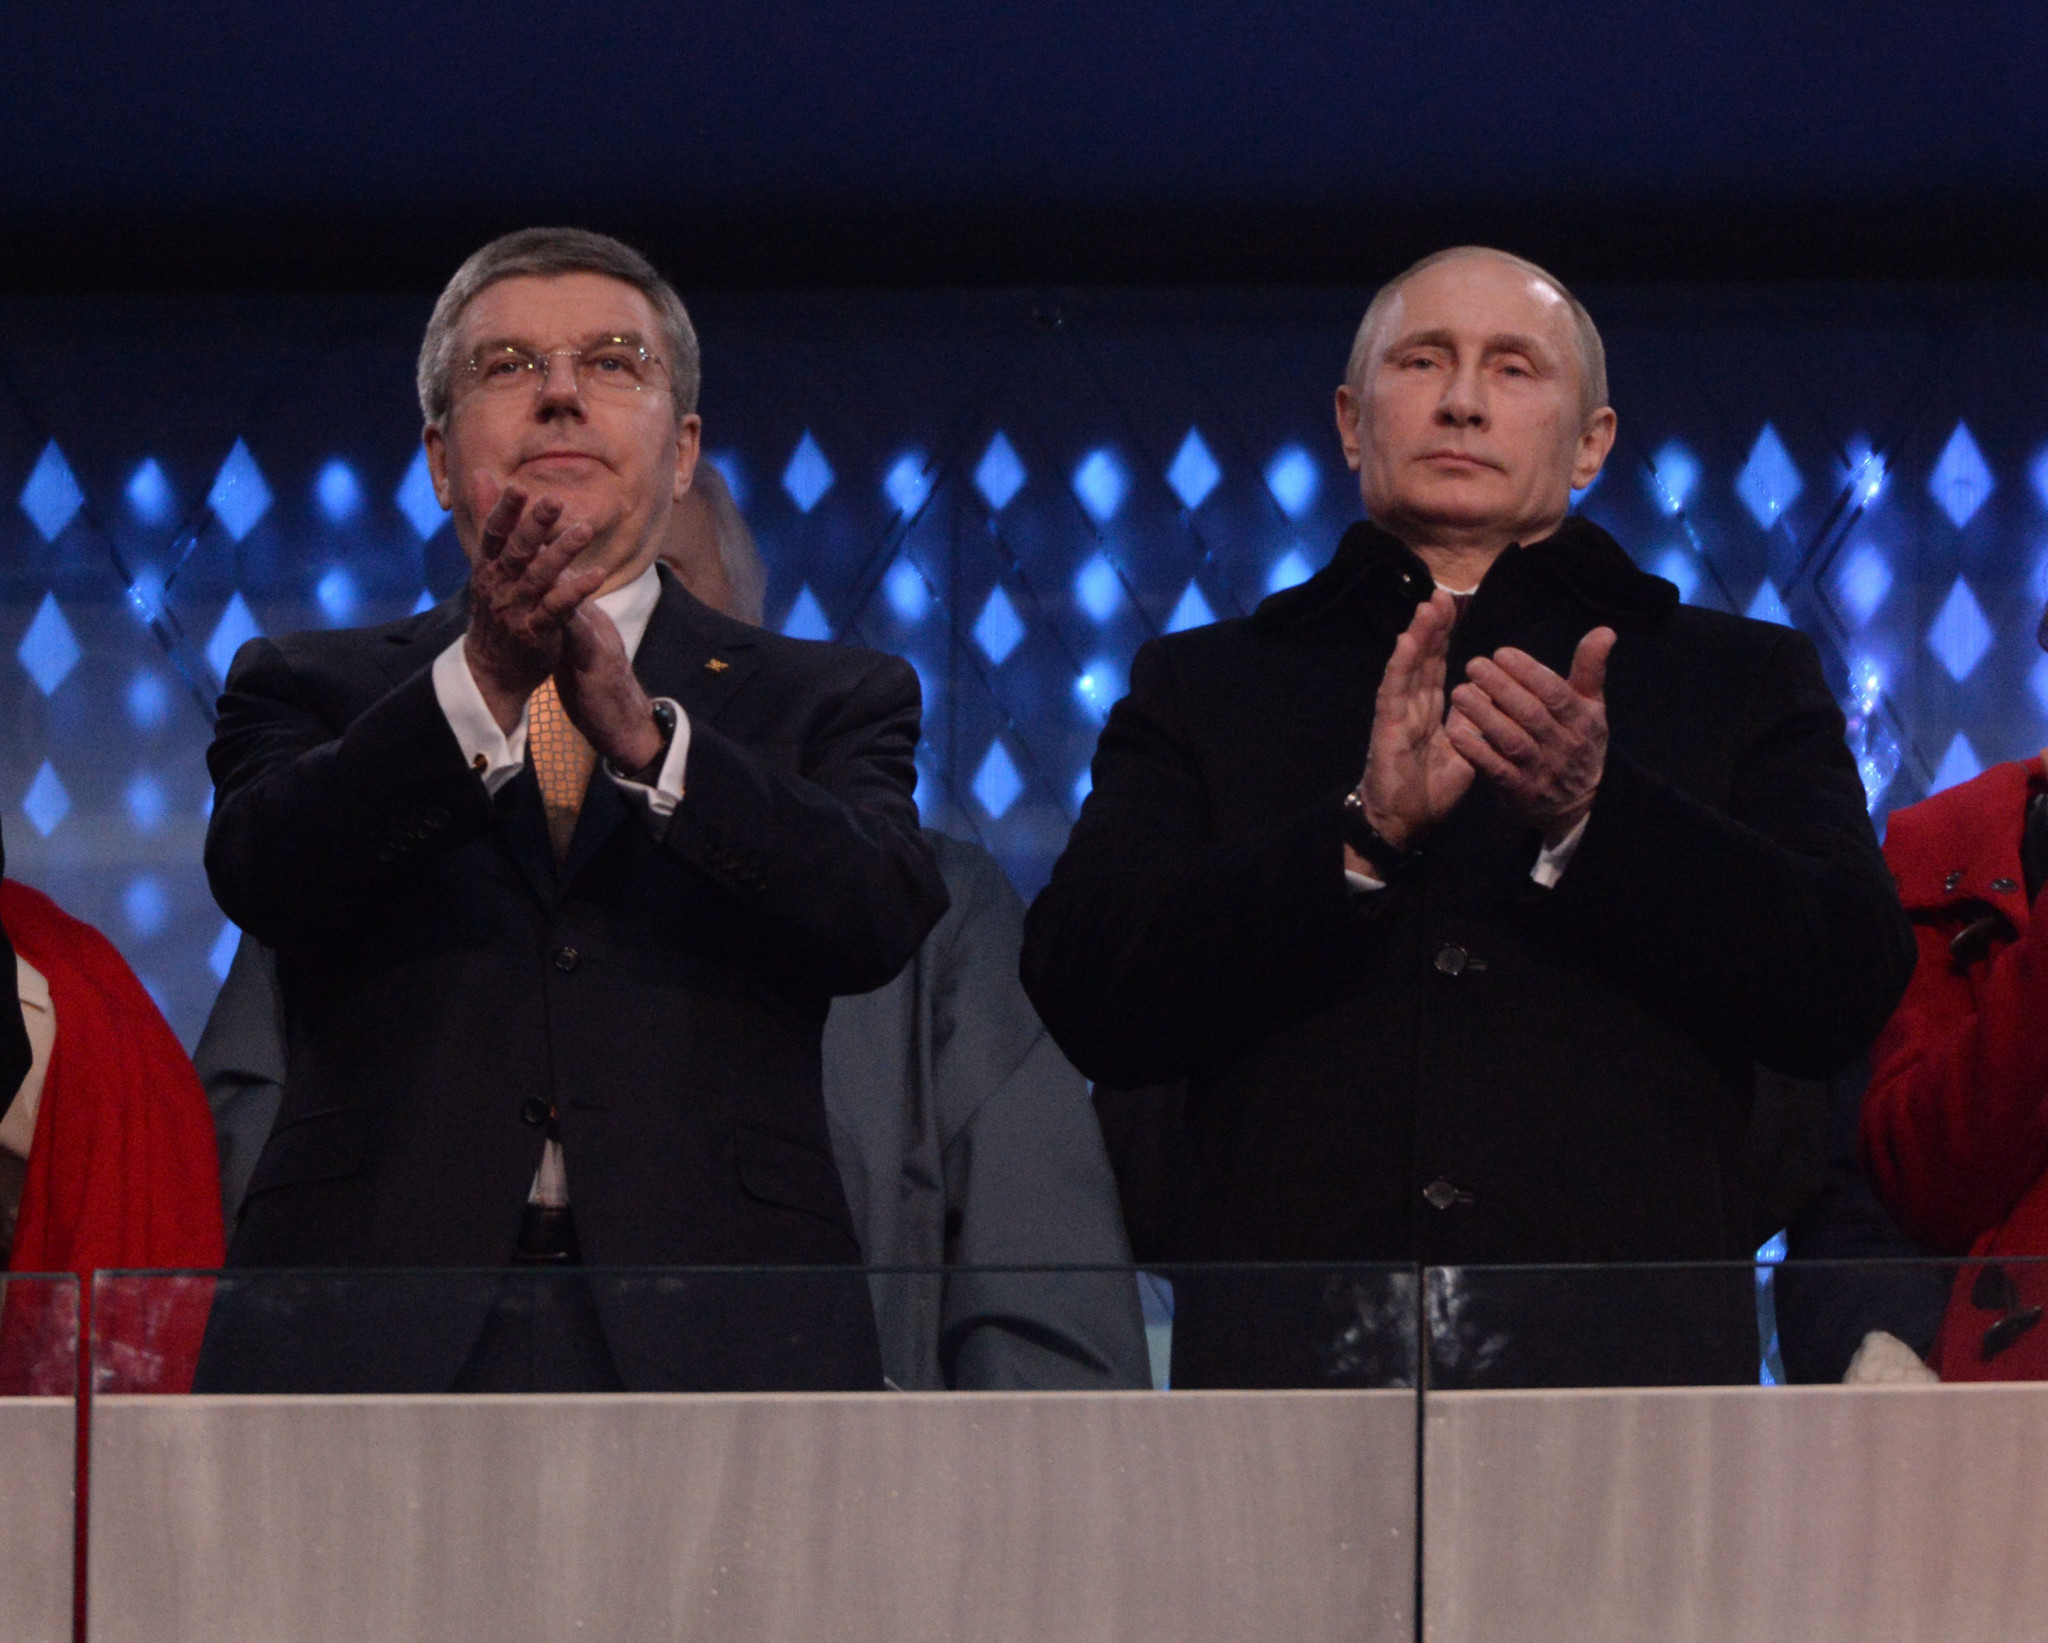 Direction given by IOC President Thomas Bach, left, will determine whether Russia are banned from Pyeongchang 2018, which will anger Vladimir Putin, who must decide whether athletes will compete as neutrals ©Getty Images